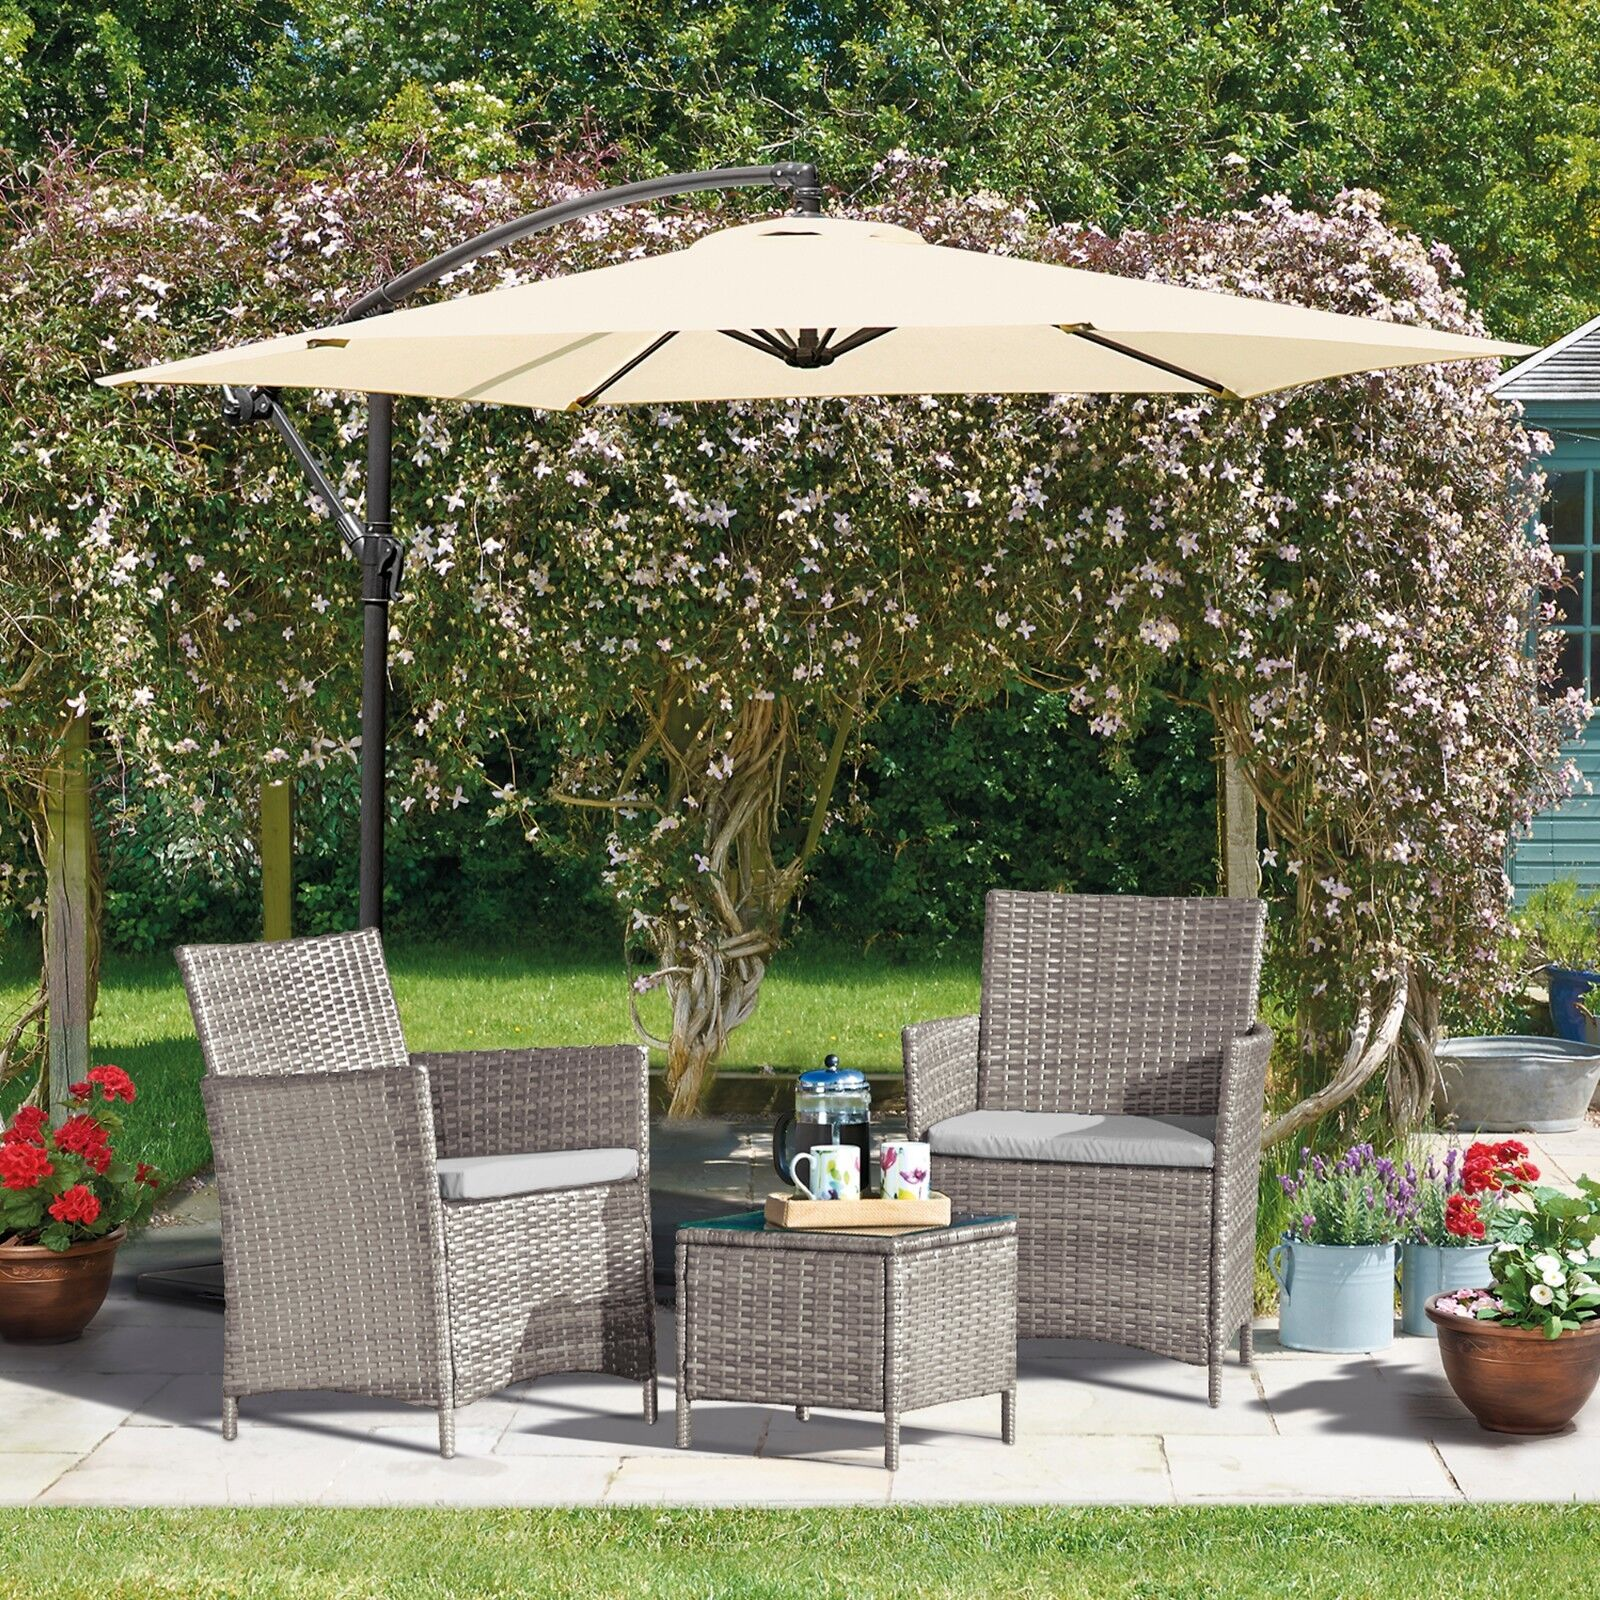 Garden Furniture - Rattan Garden Furniture Outdoor Patio 3pc Bistro Set 2 Chairs & Glass Table NEW